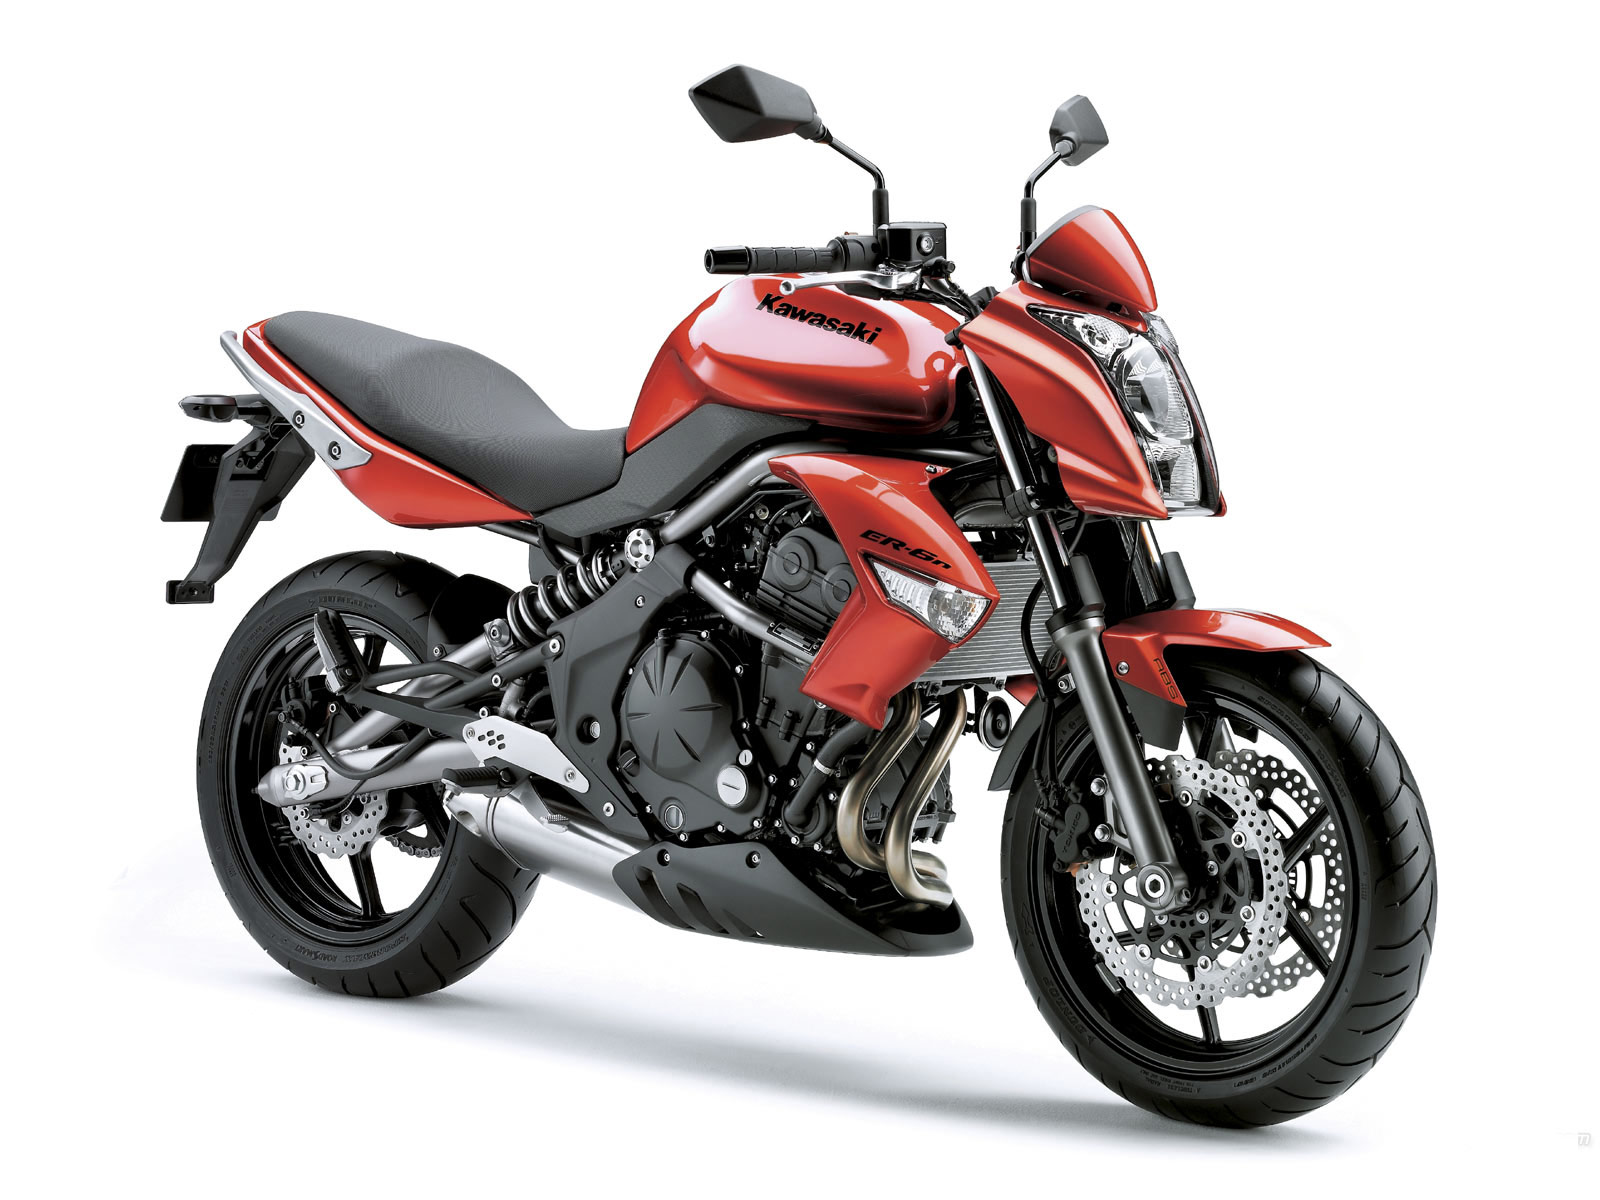 2009 KAWASAKI ER6n accident lawyers info  specs pictures